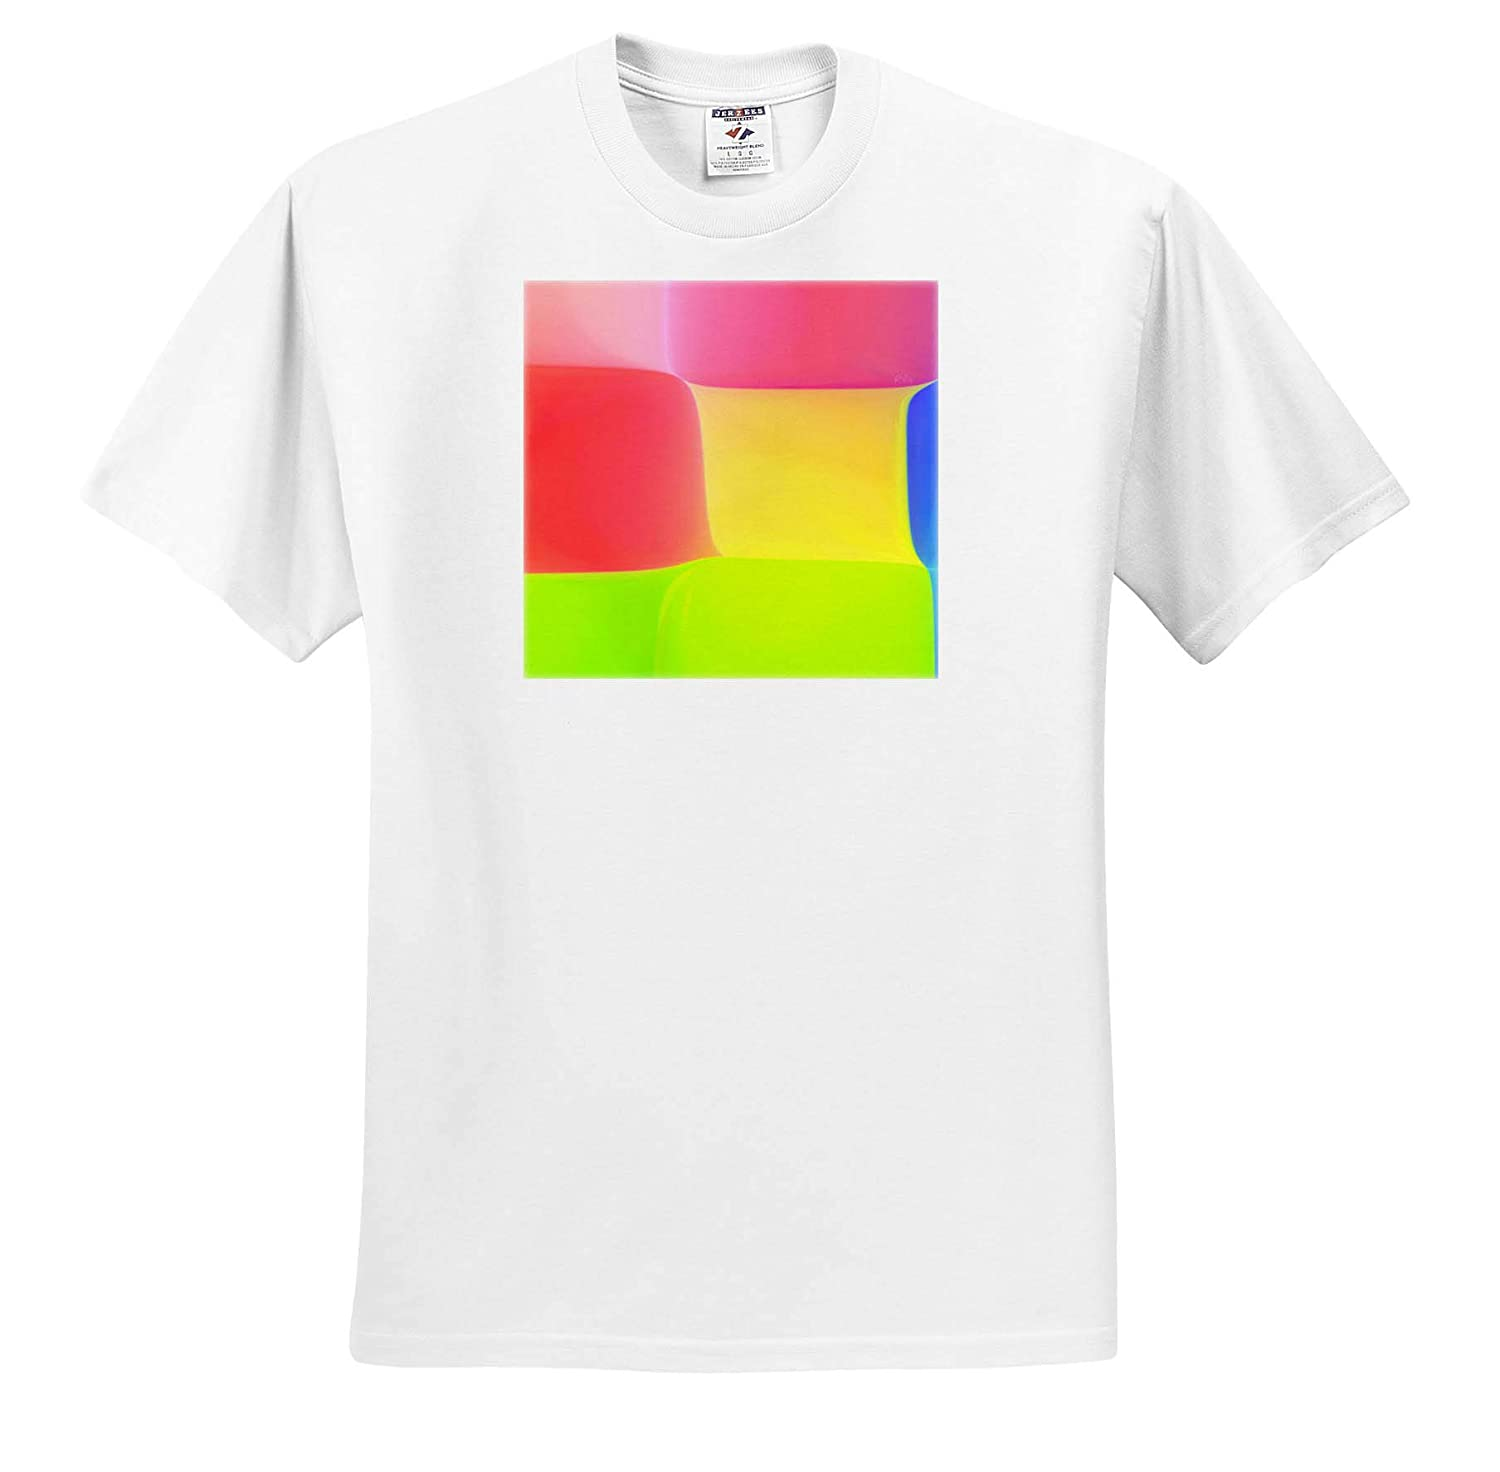 T-Shirts Color Chessboard Yellow and Green Squares Medium red Generative Artworks 3dRose RVig